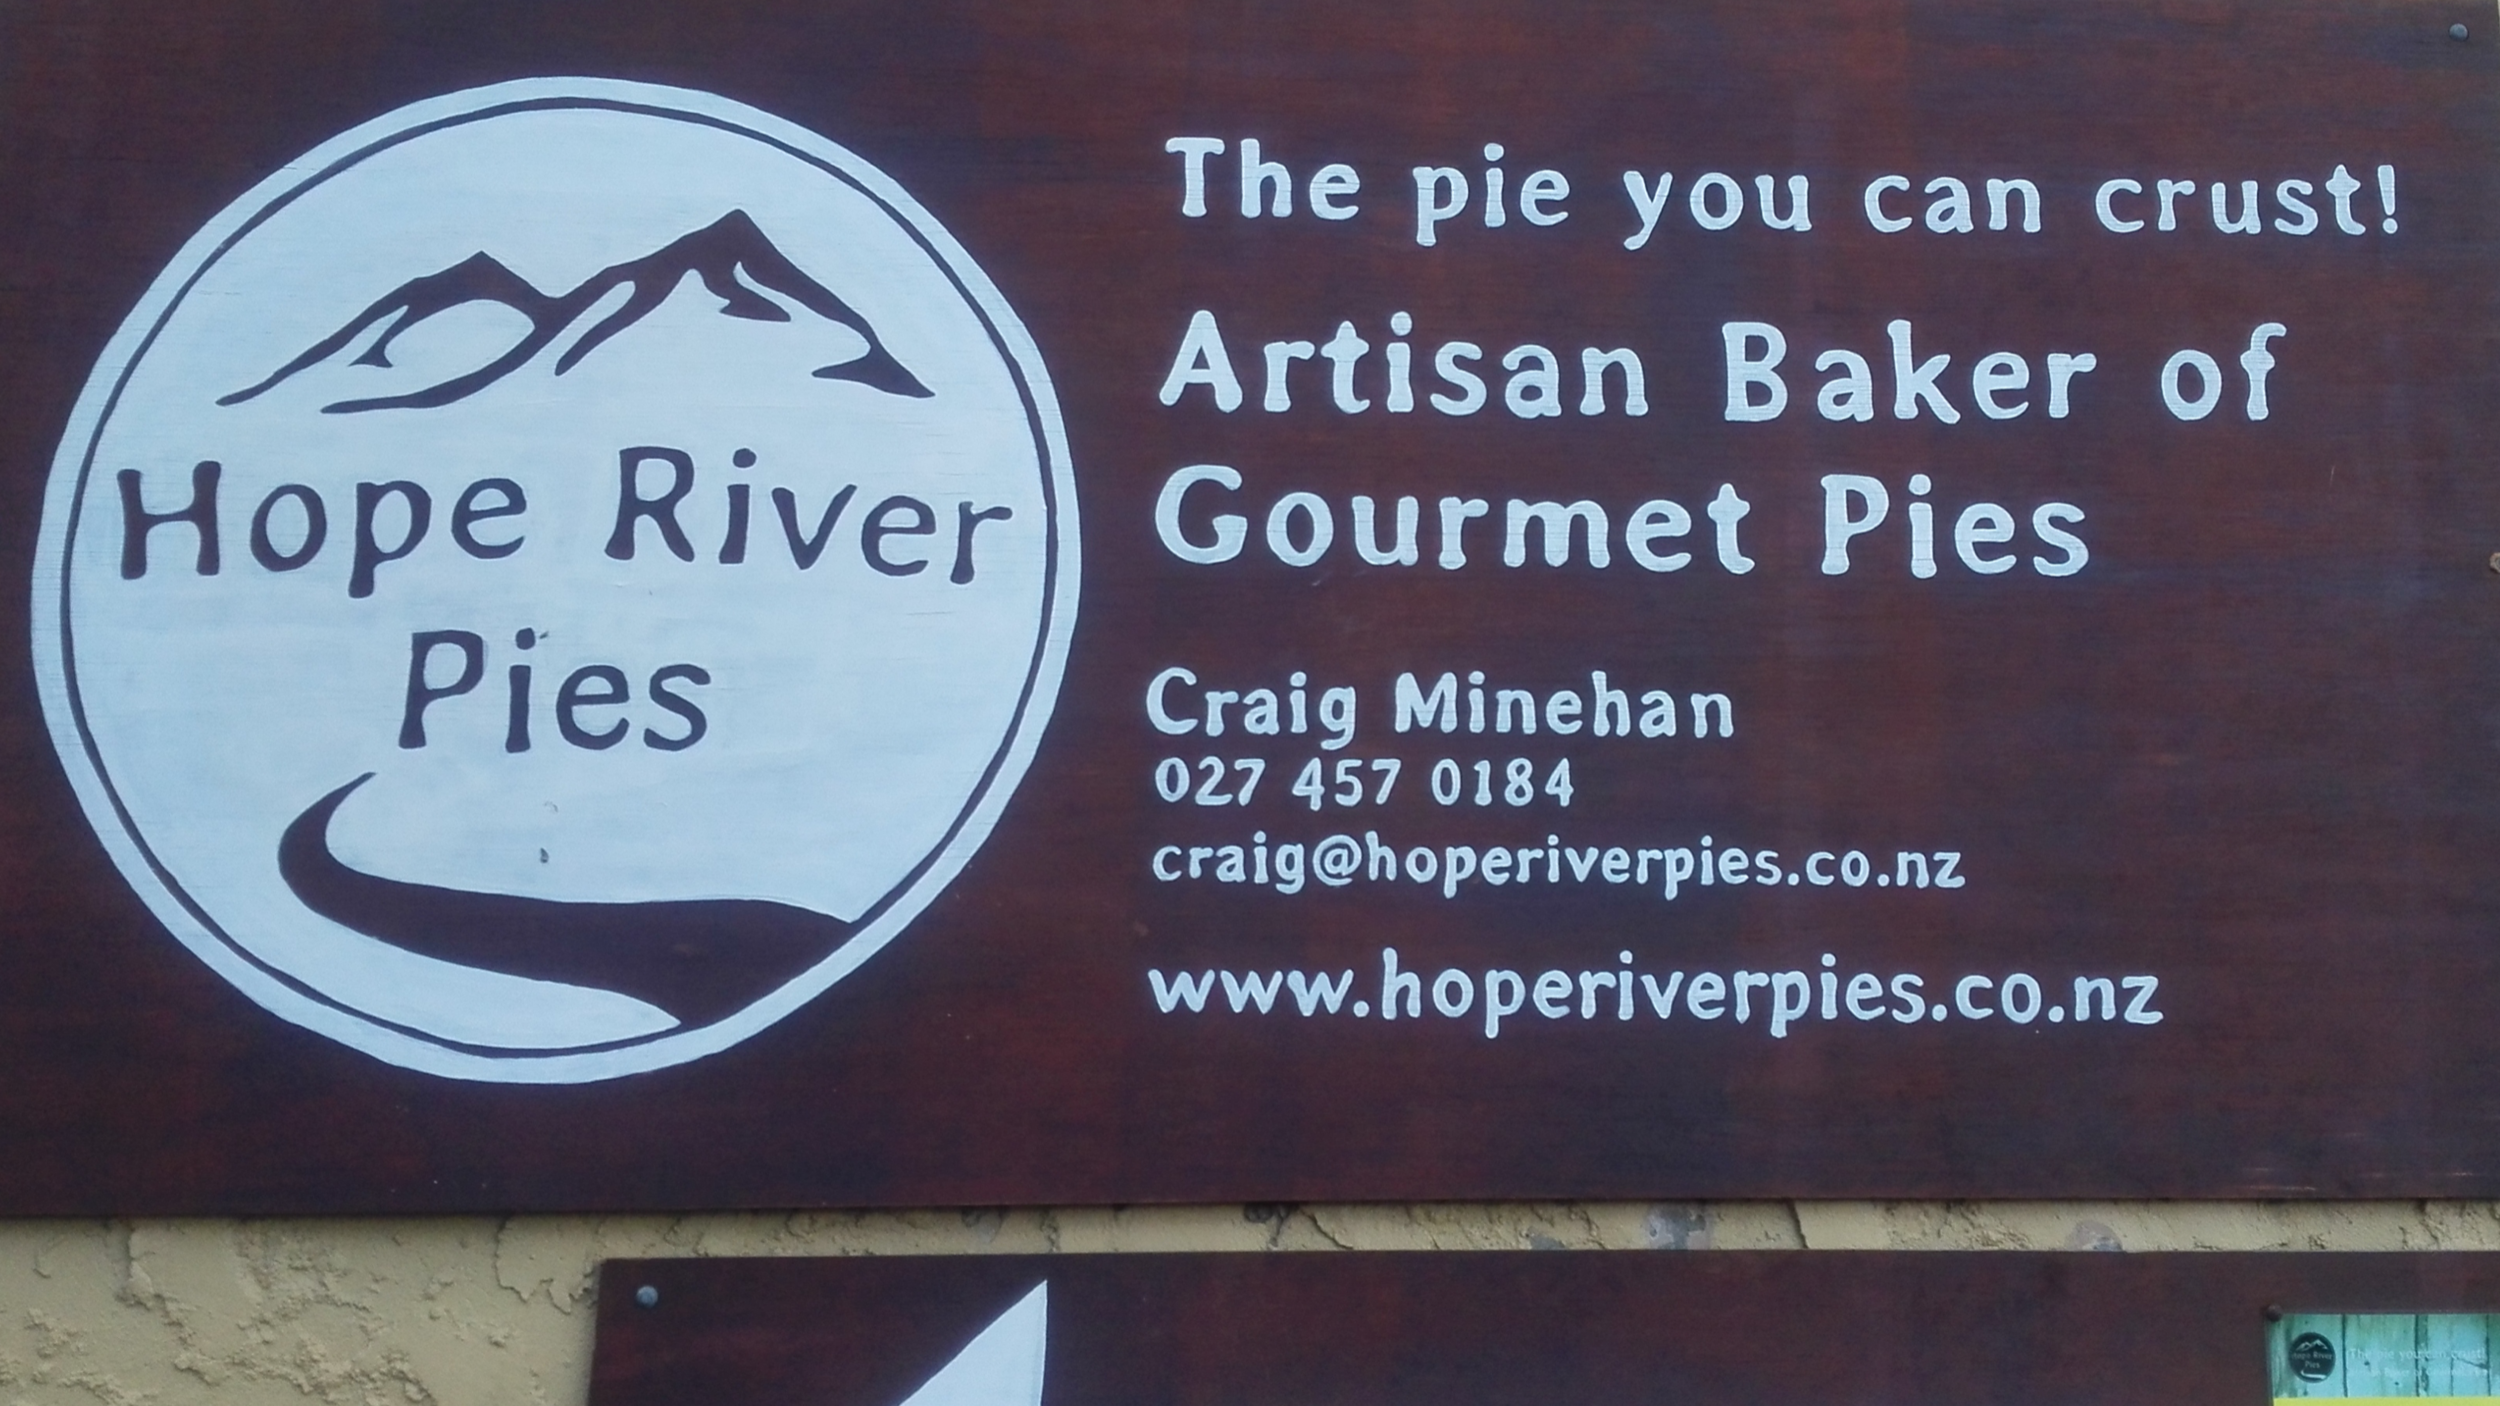 Hope River Pies